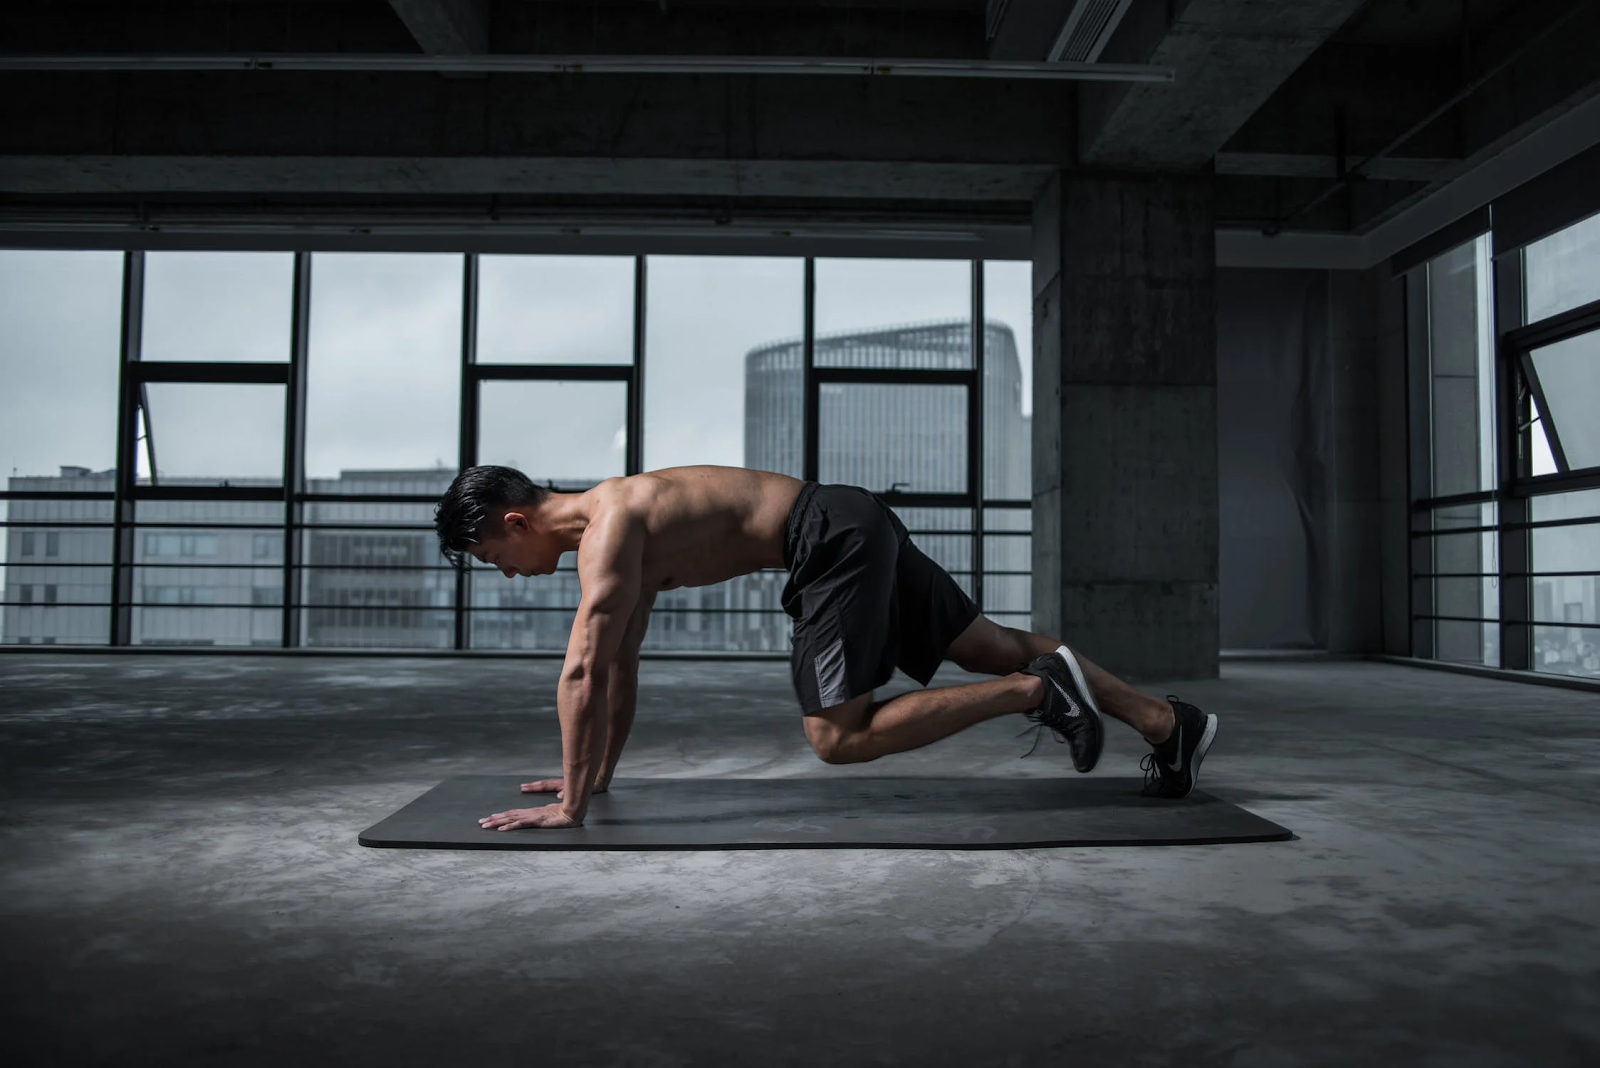 An image of a man in push-up position on a yoga mat in an otherwise empty room.